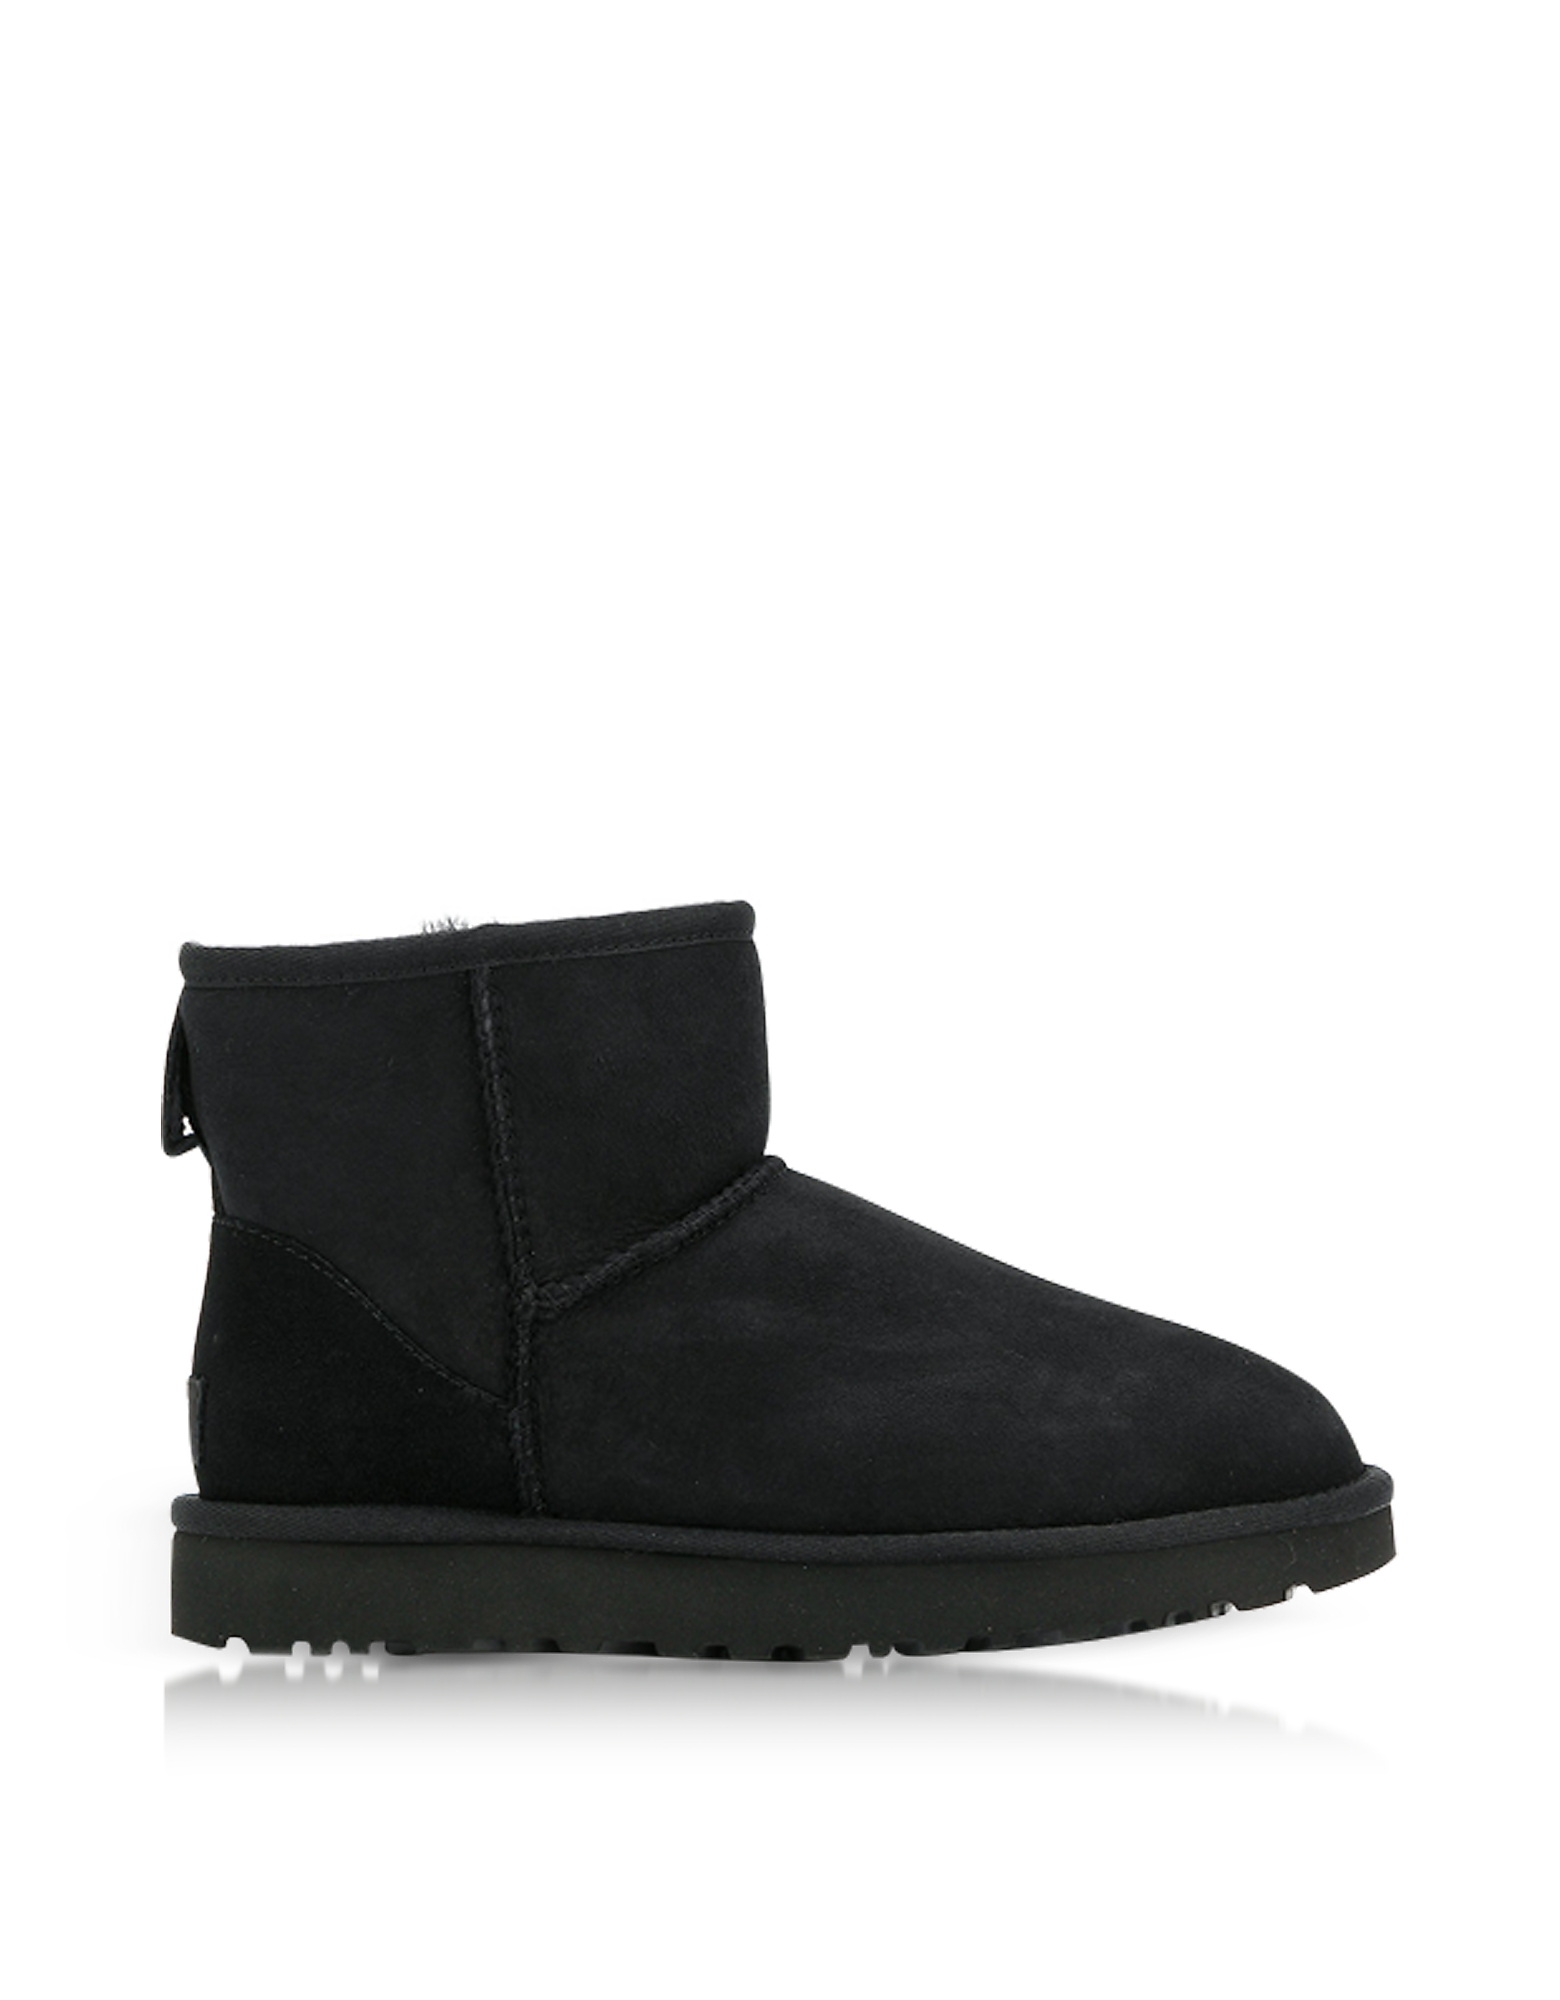 UGG Shoes, Black Classic Mini II Boots